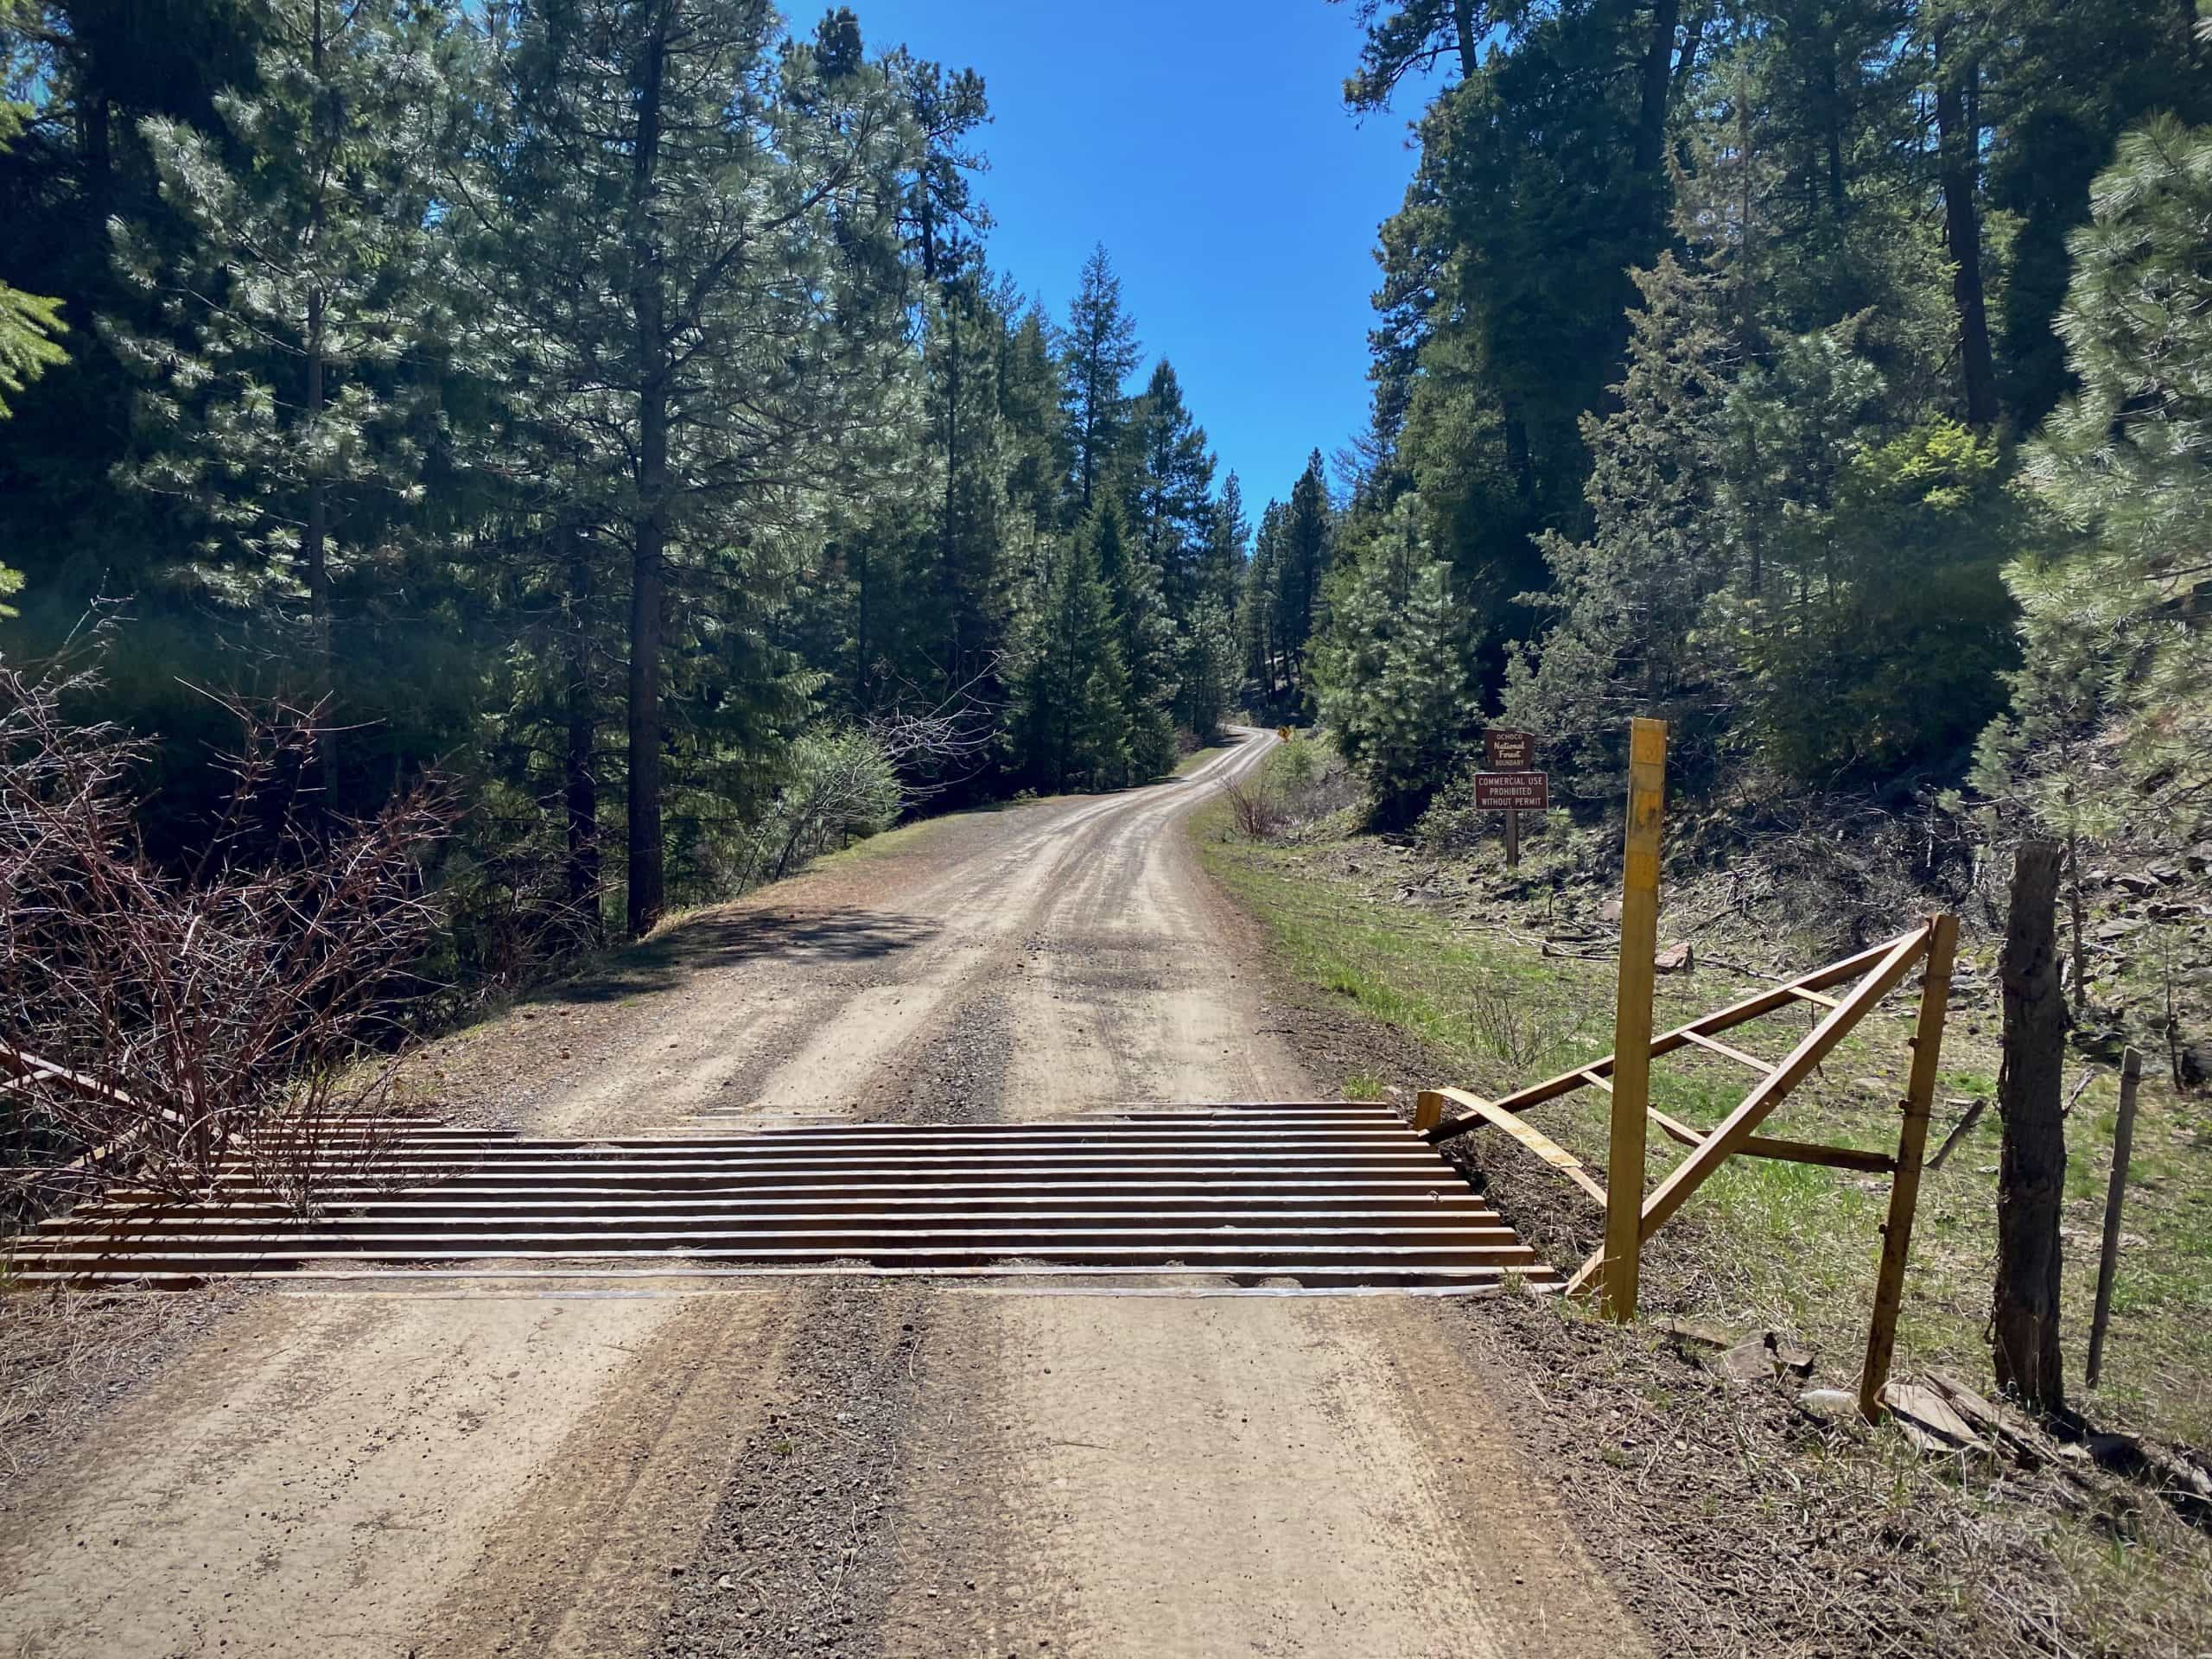 The cattle guard marking the transition from Shotgun ranch to the Ochoco National forest.